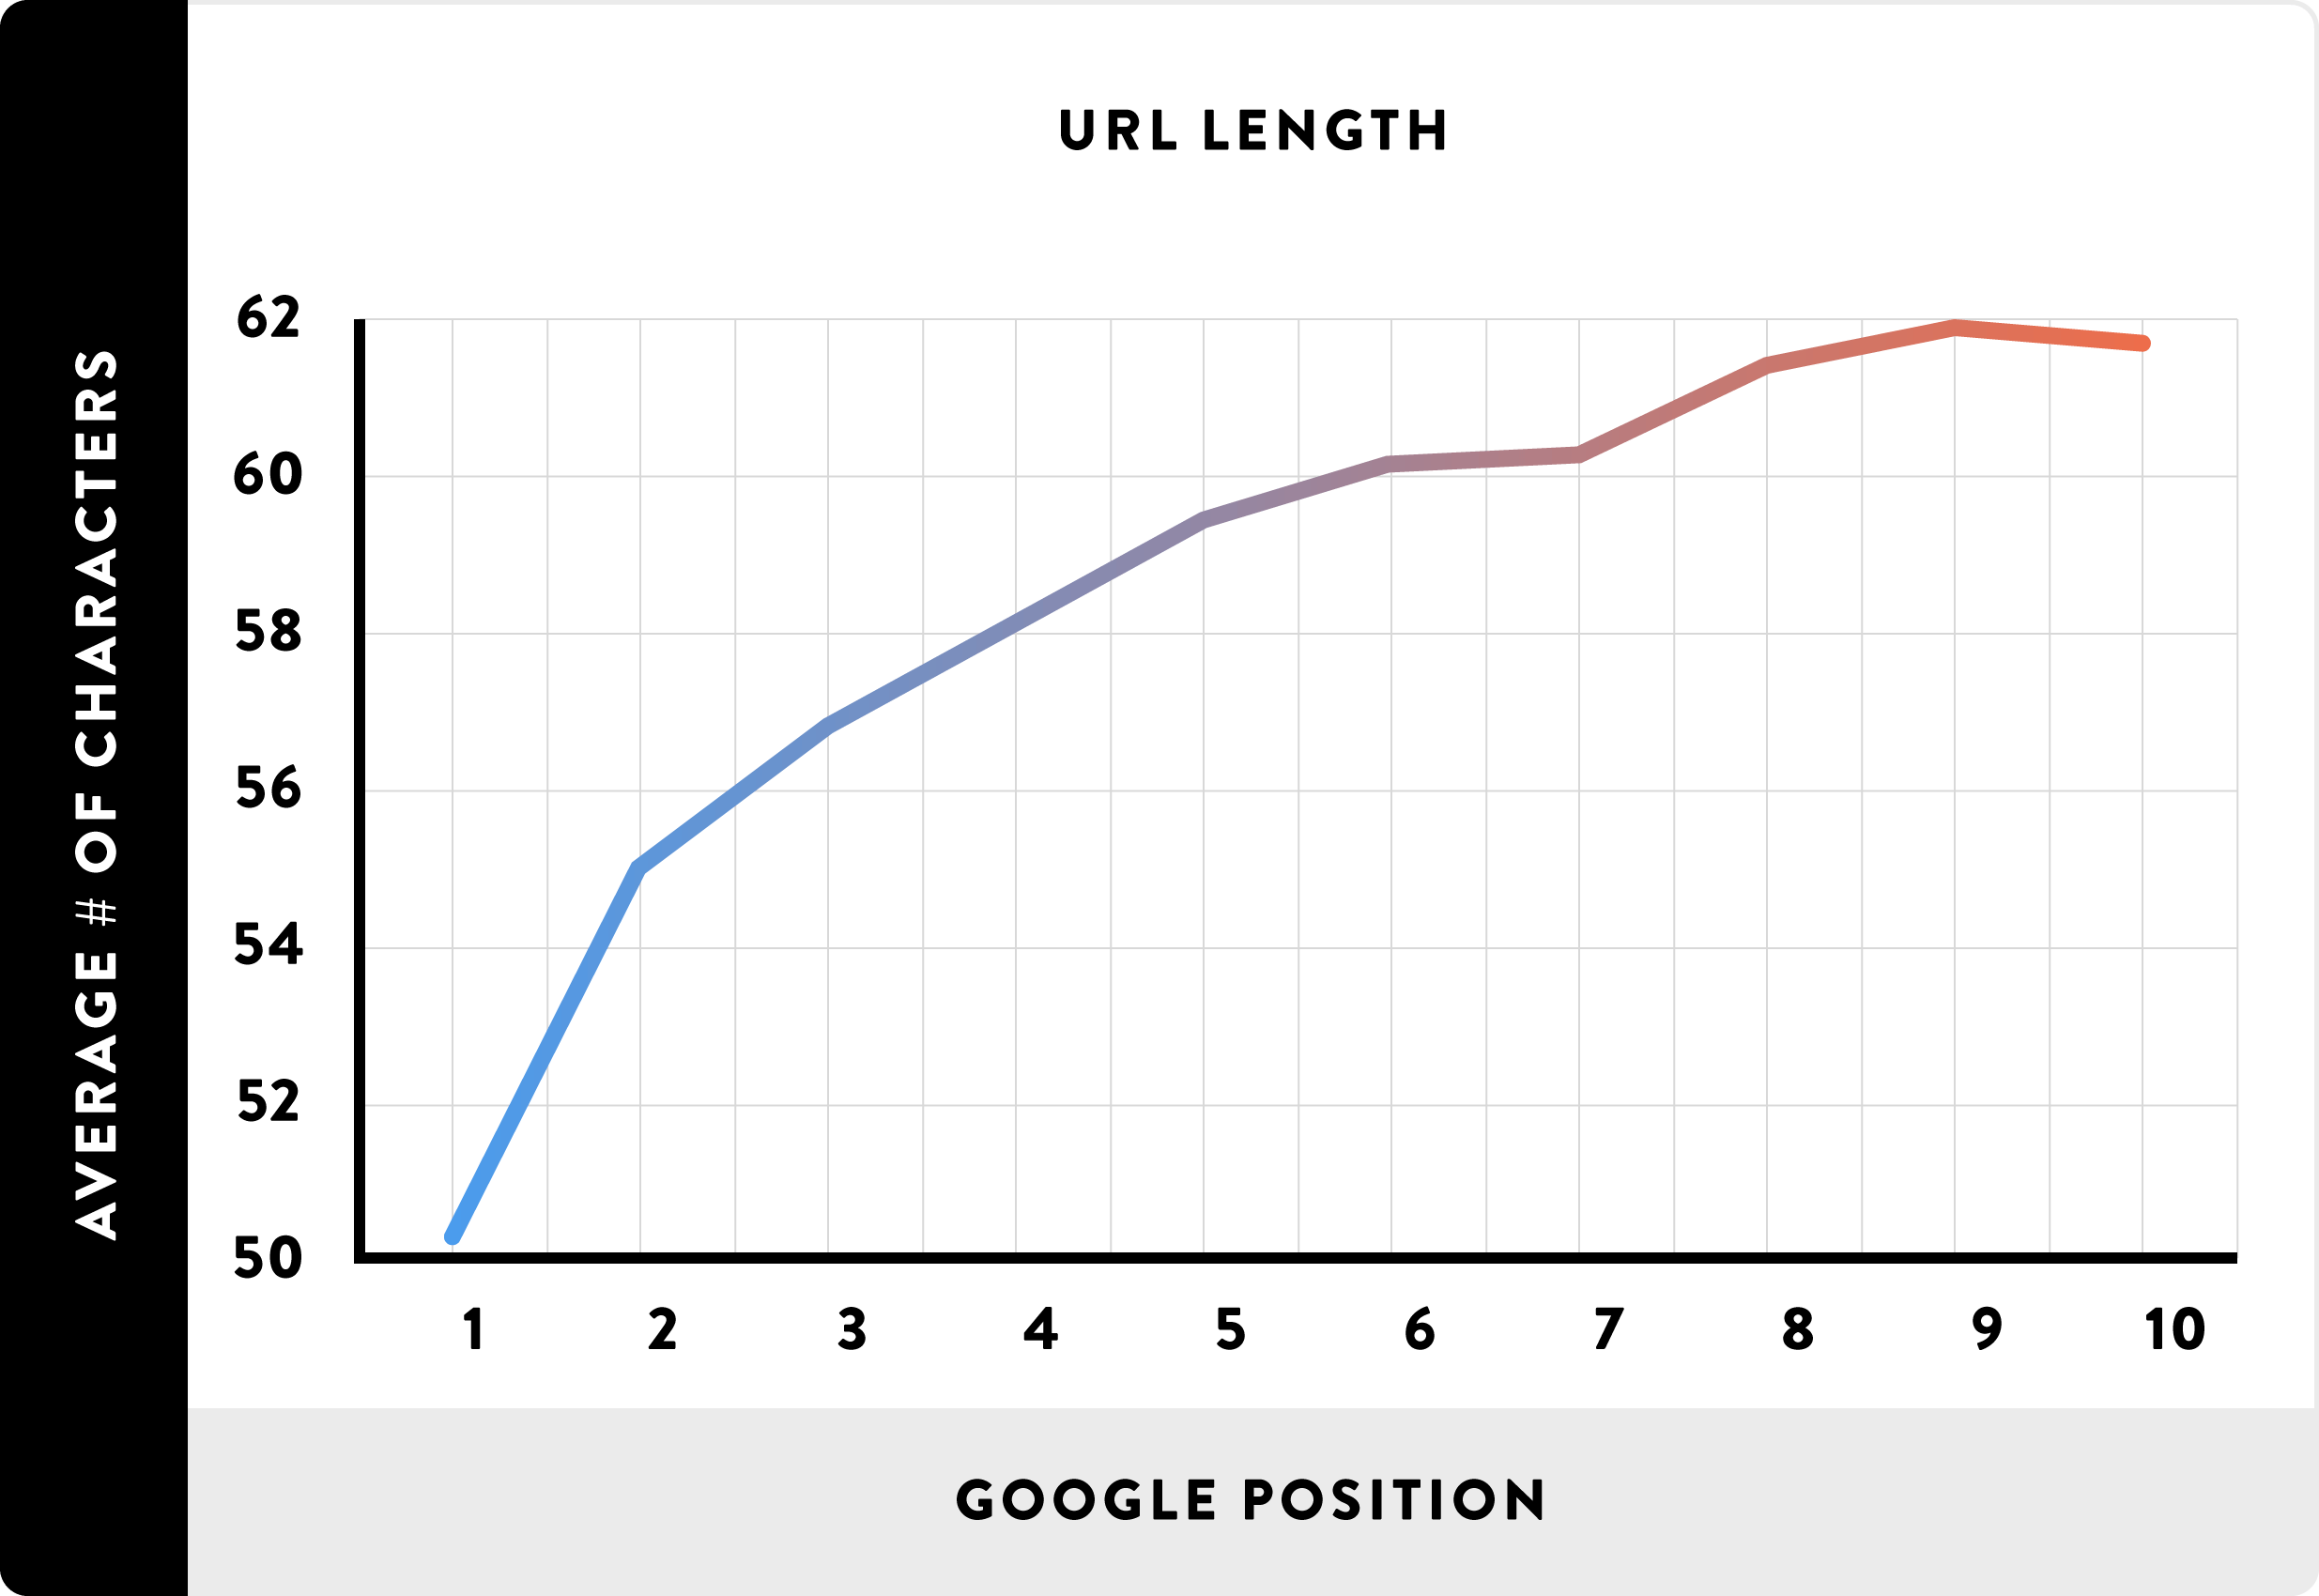 Shorter URLs and higher Google rankings are strongly correlated